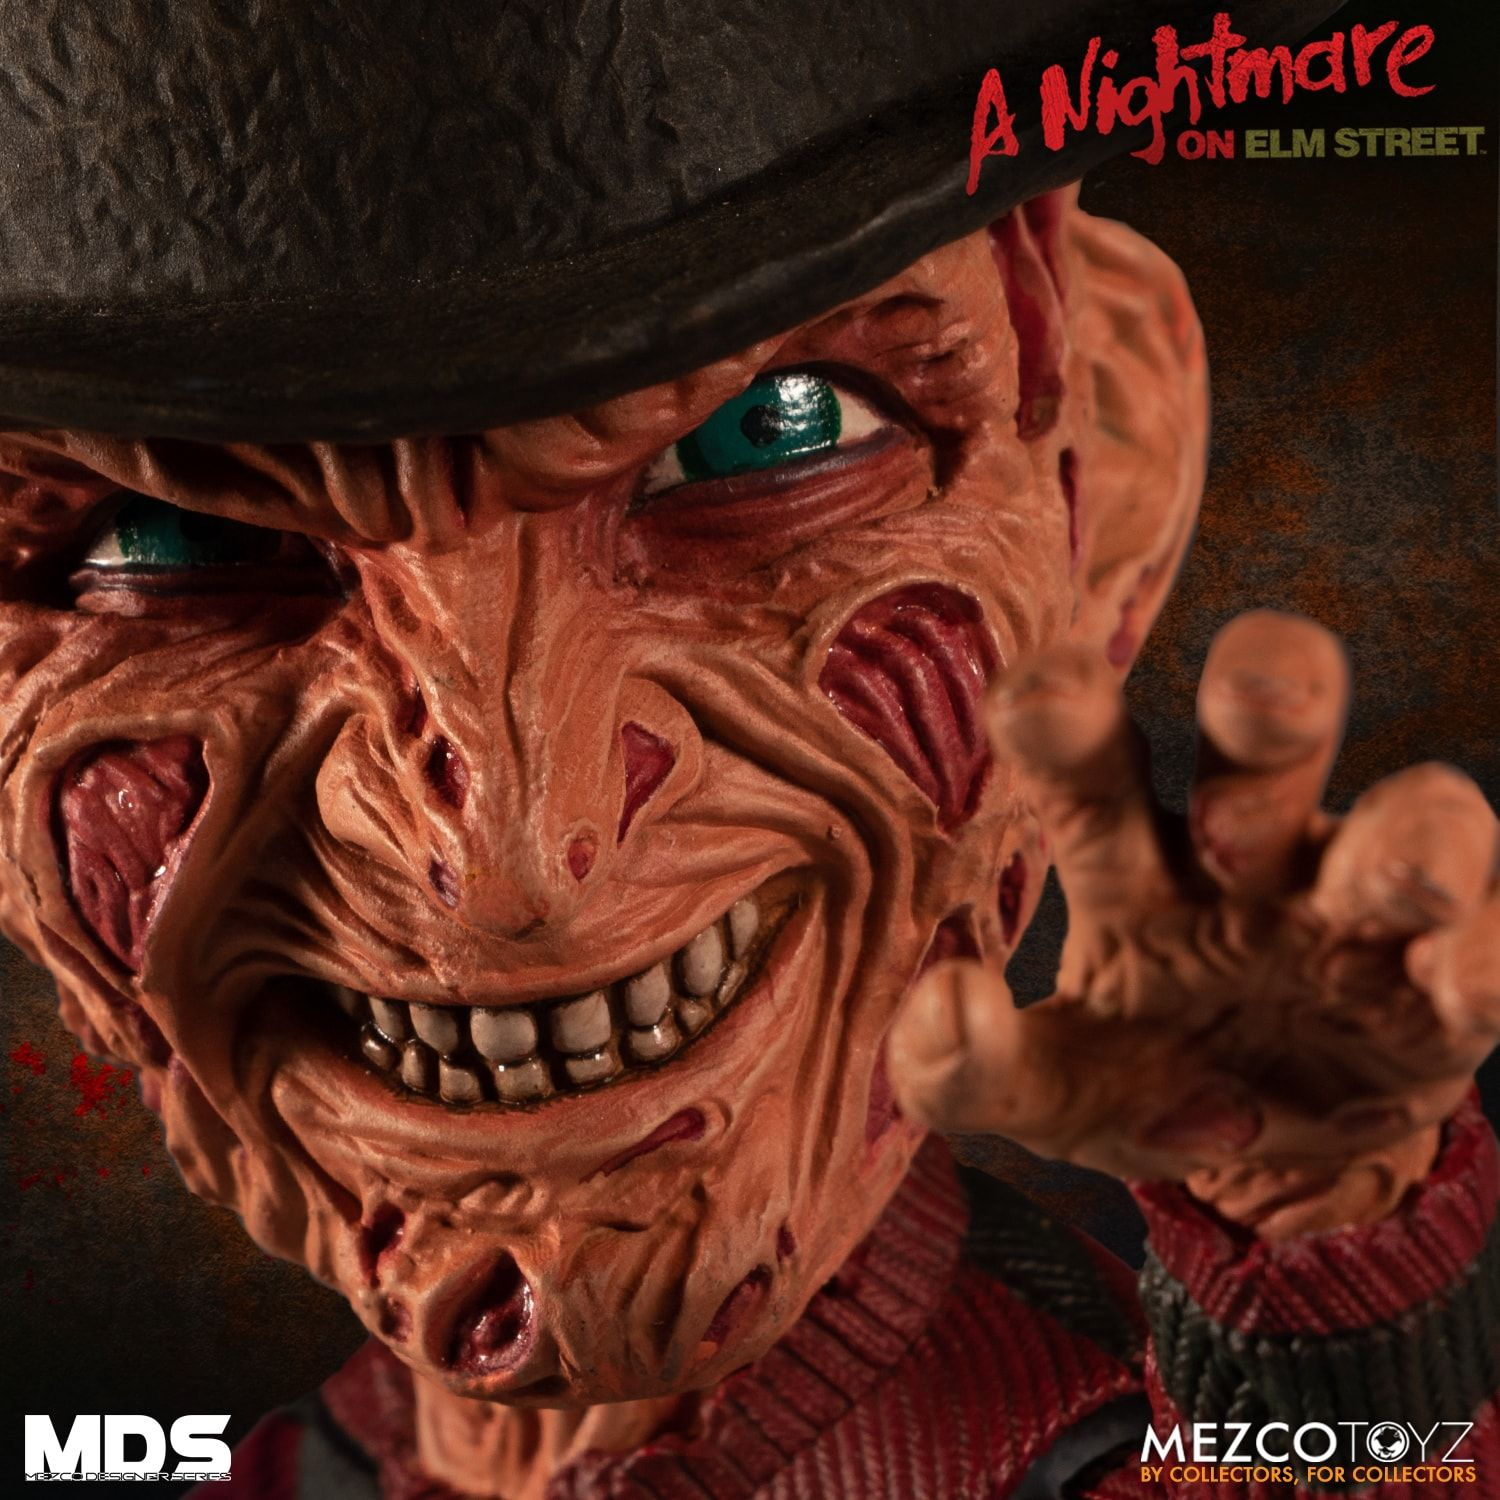 Freddy Krueger - A Nightmare on Elm Street III (A Hora do Pesadelo) - Stylized Figure - Mezco Toyz